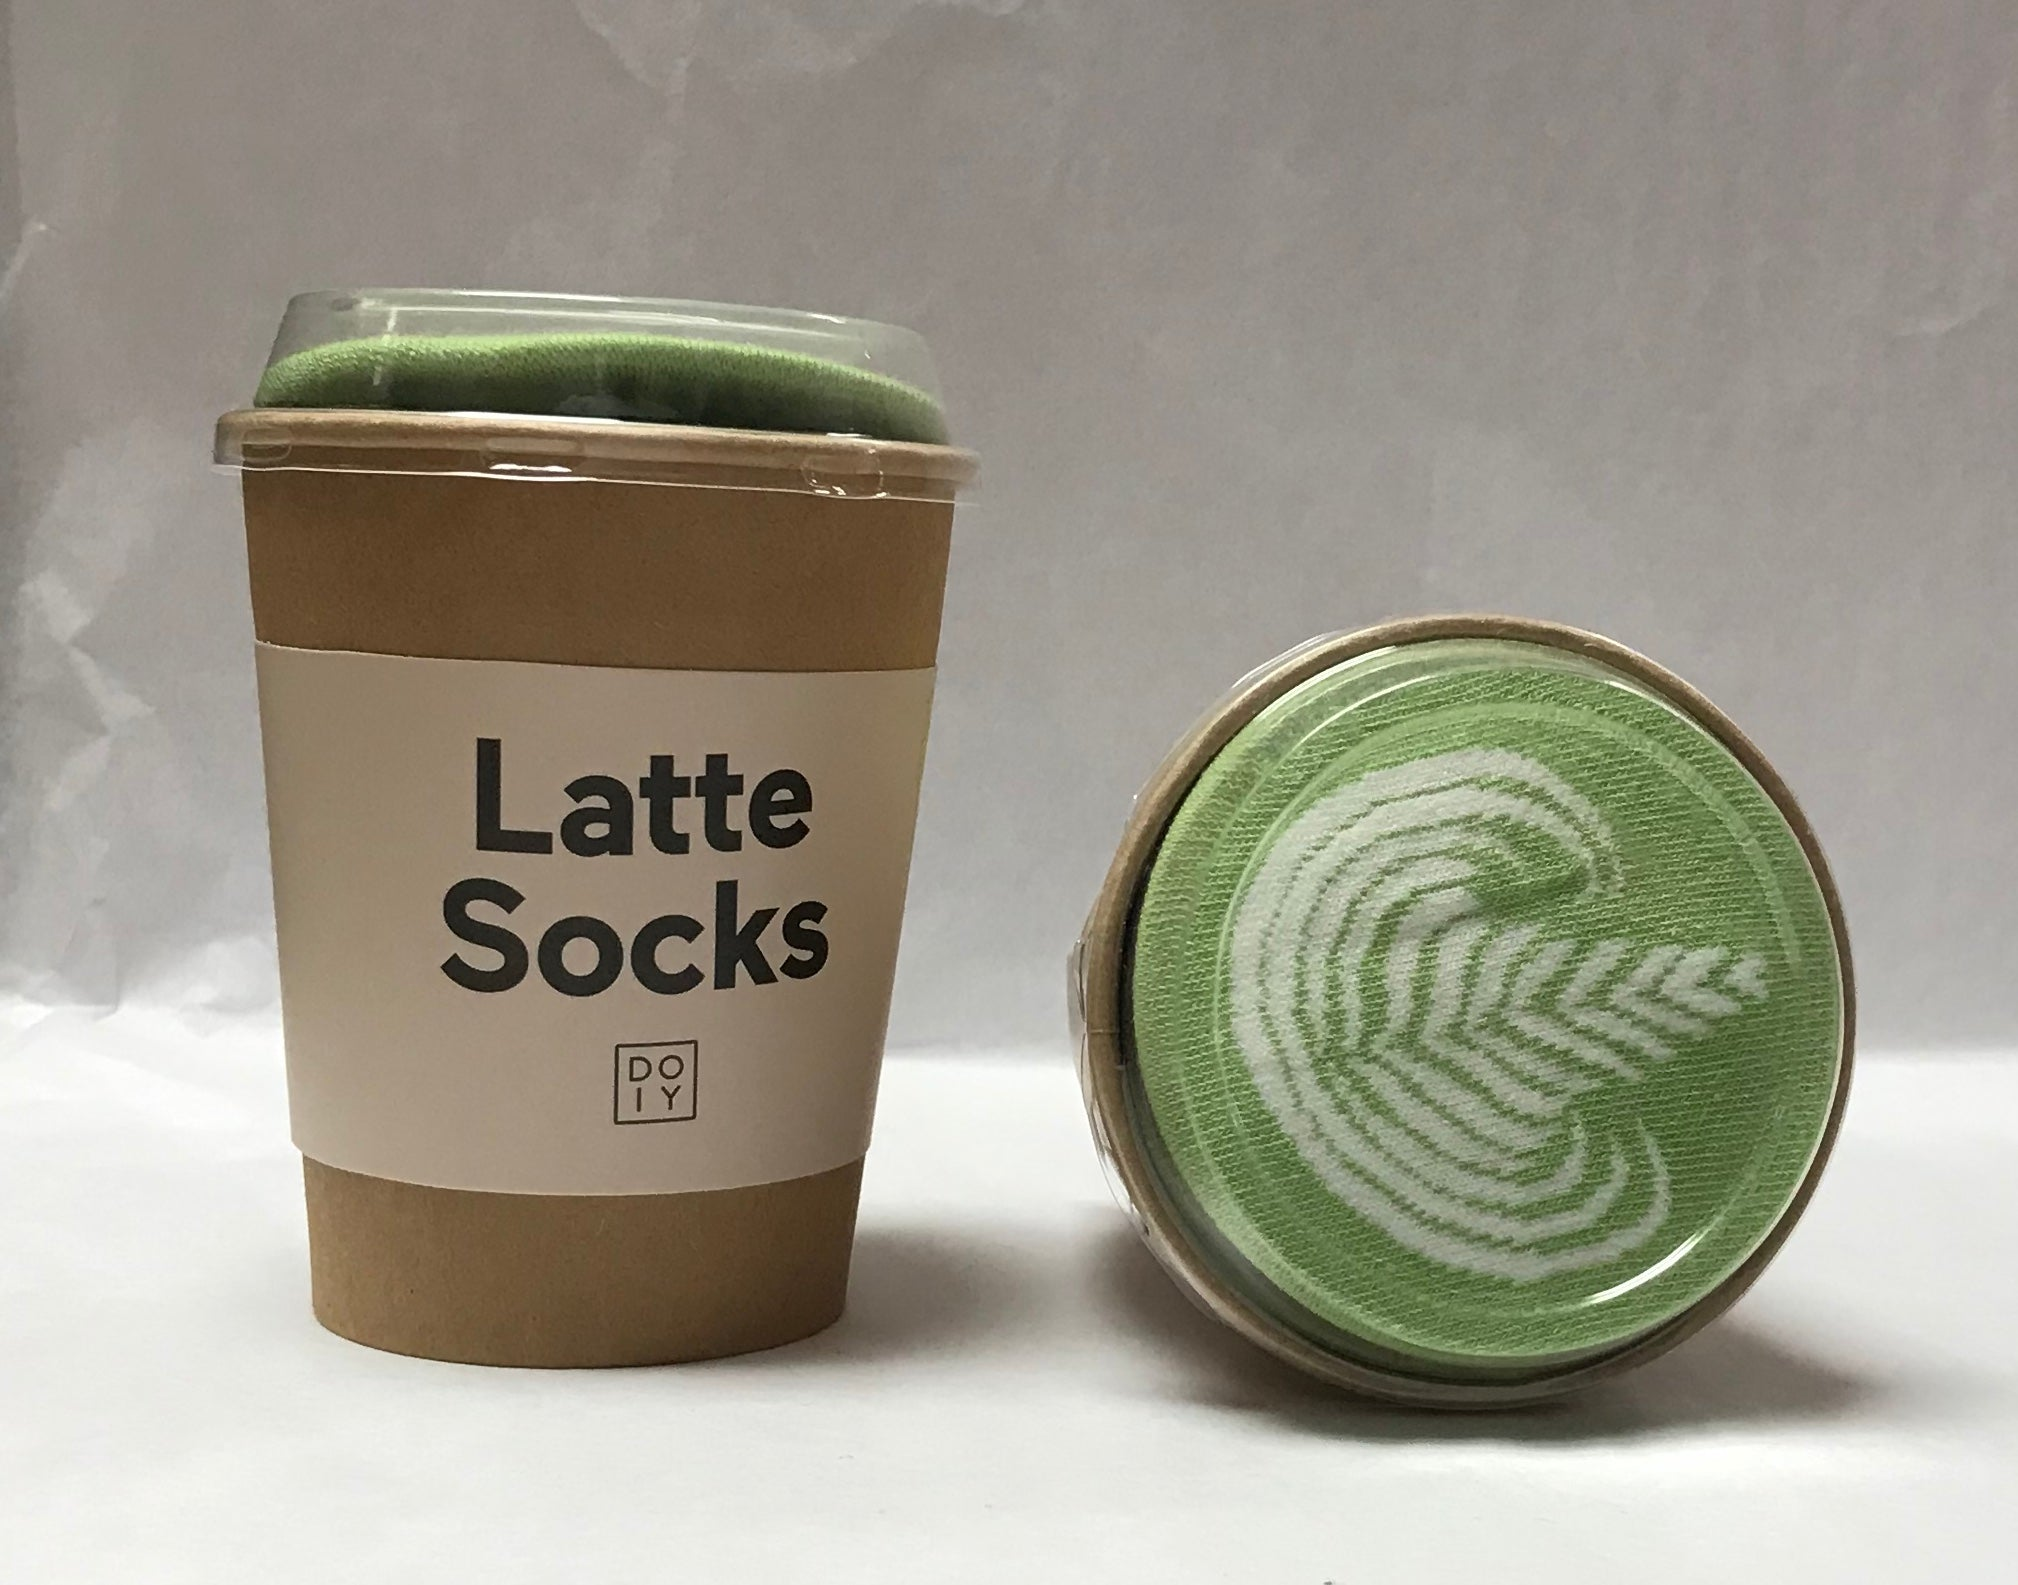 Matcha Latte Socks